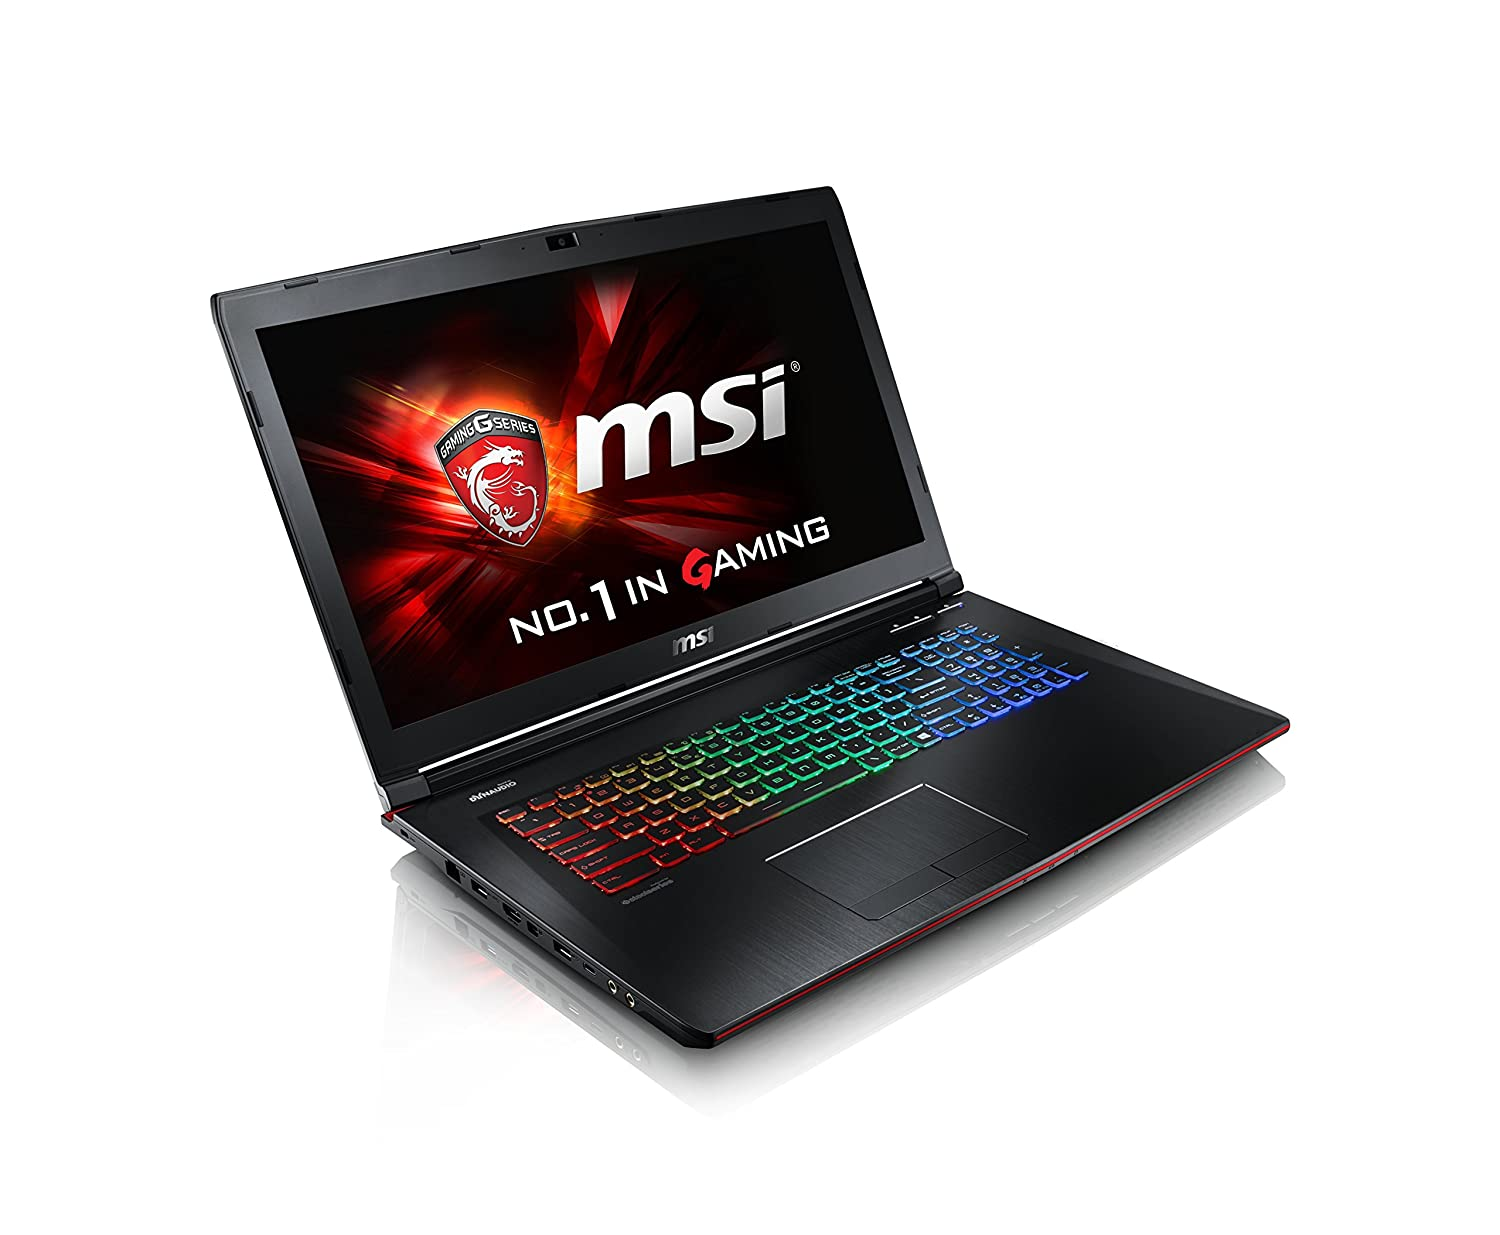 MSI GE72 APACHE-235 17.3' GAMING LAPTOP NOTEBOOK Geforce GTX 960M i7-4720HQ 16GB 1TB WINDOWS 10 BACKLIT KEYBOARD